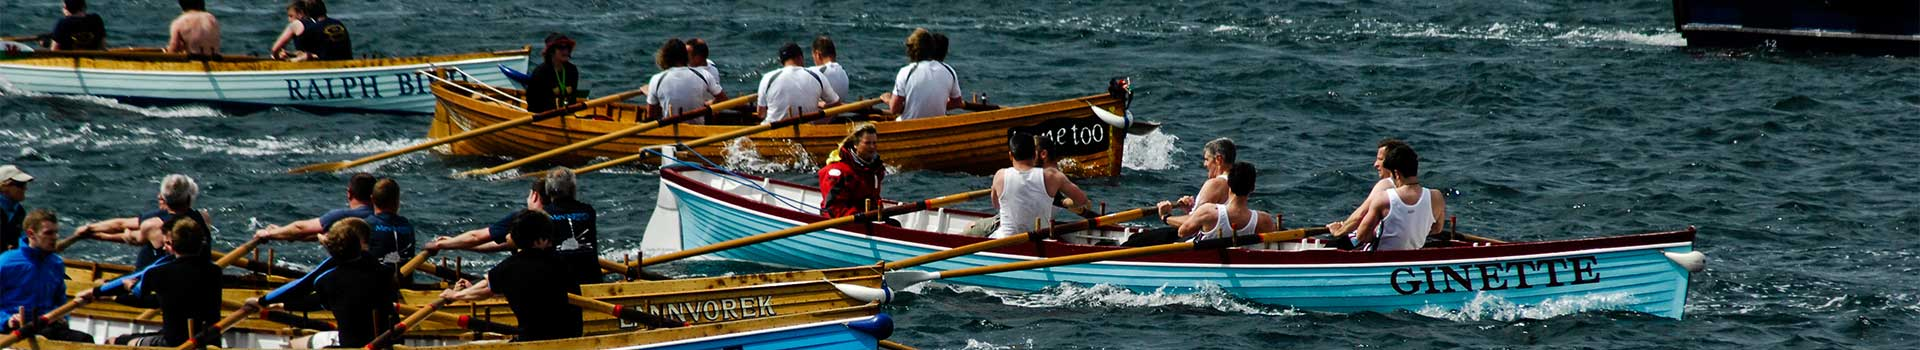 men-racing-scillies